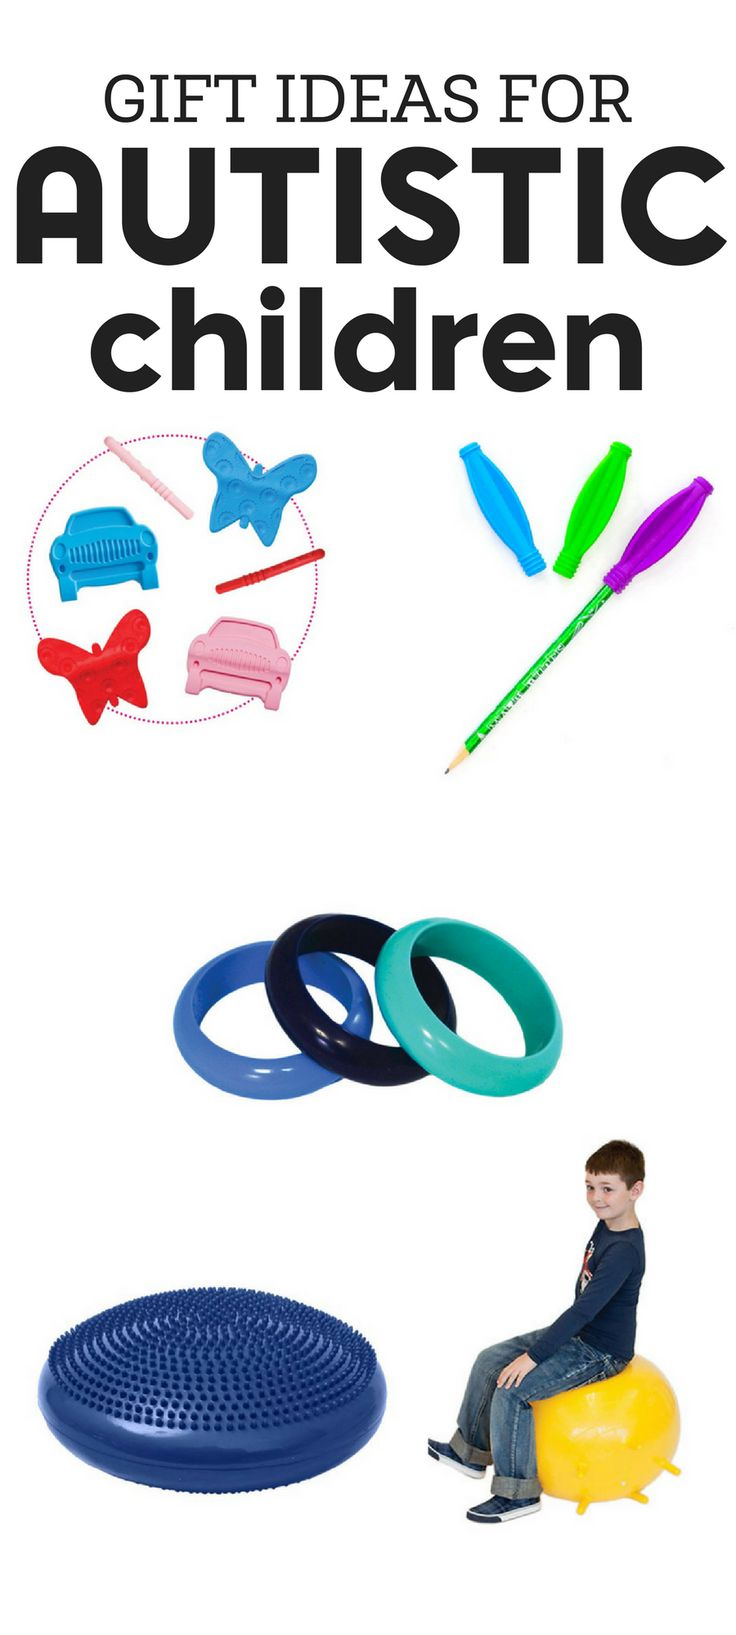 In need of gift ideas for autistic children? Whether your child or some else's, these selections fit any budget or price range.